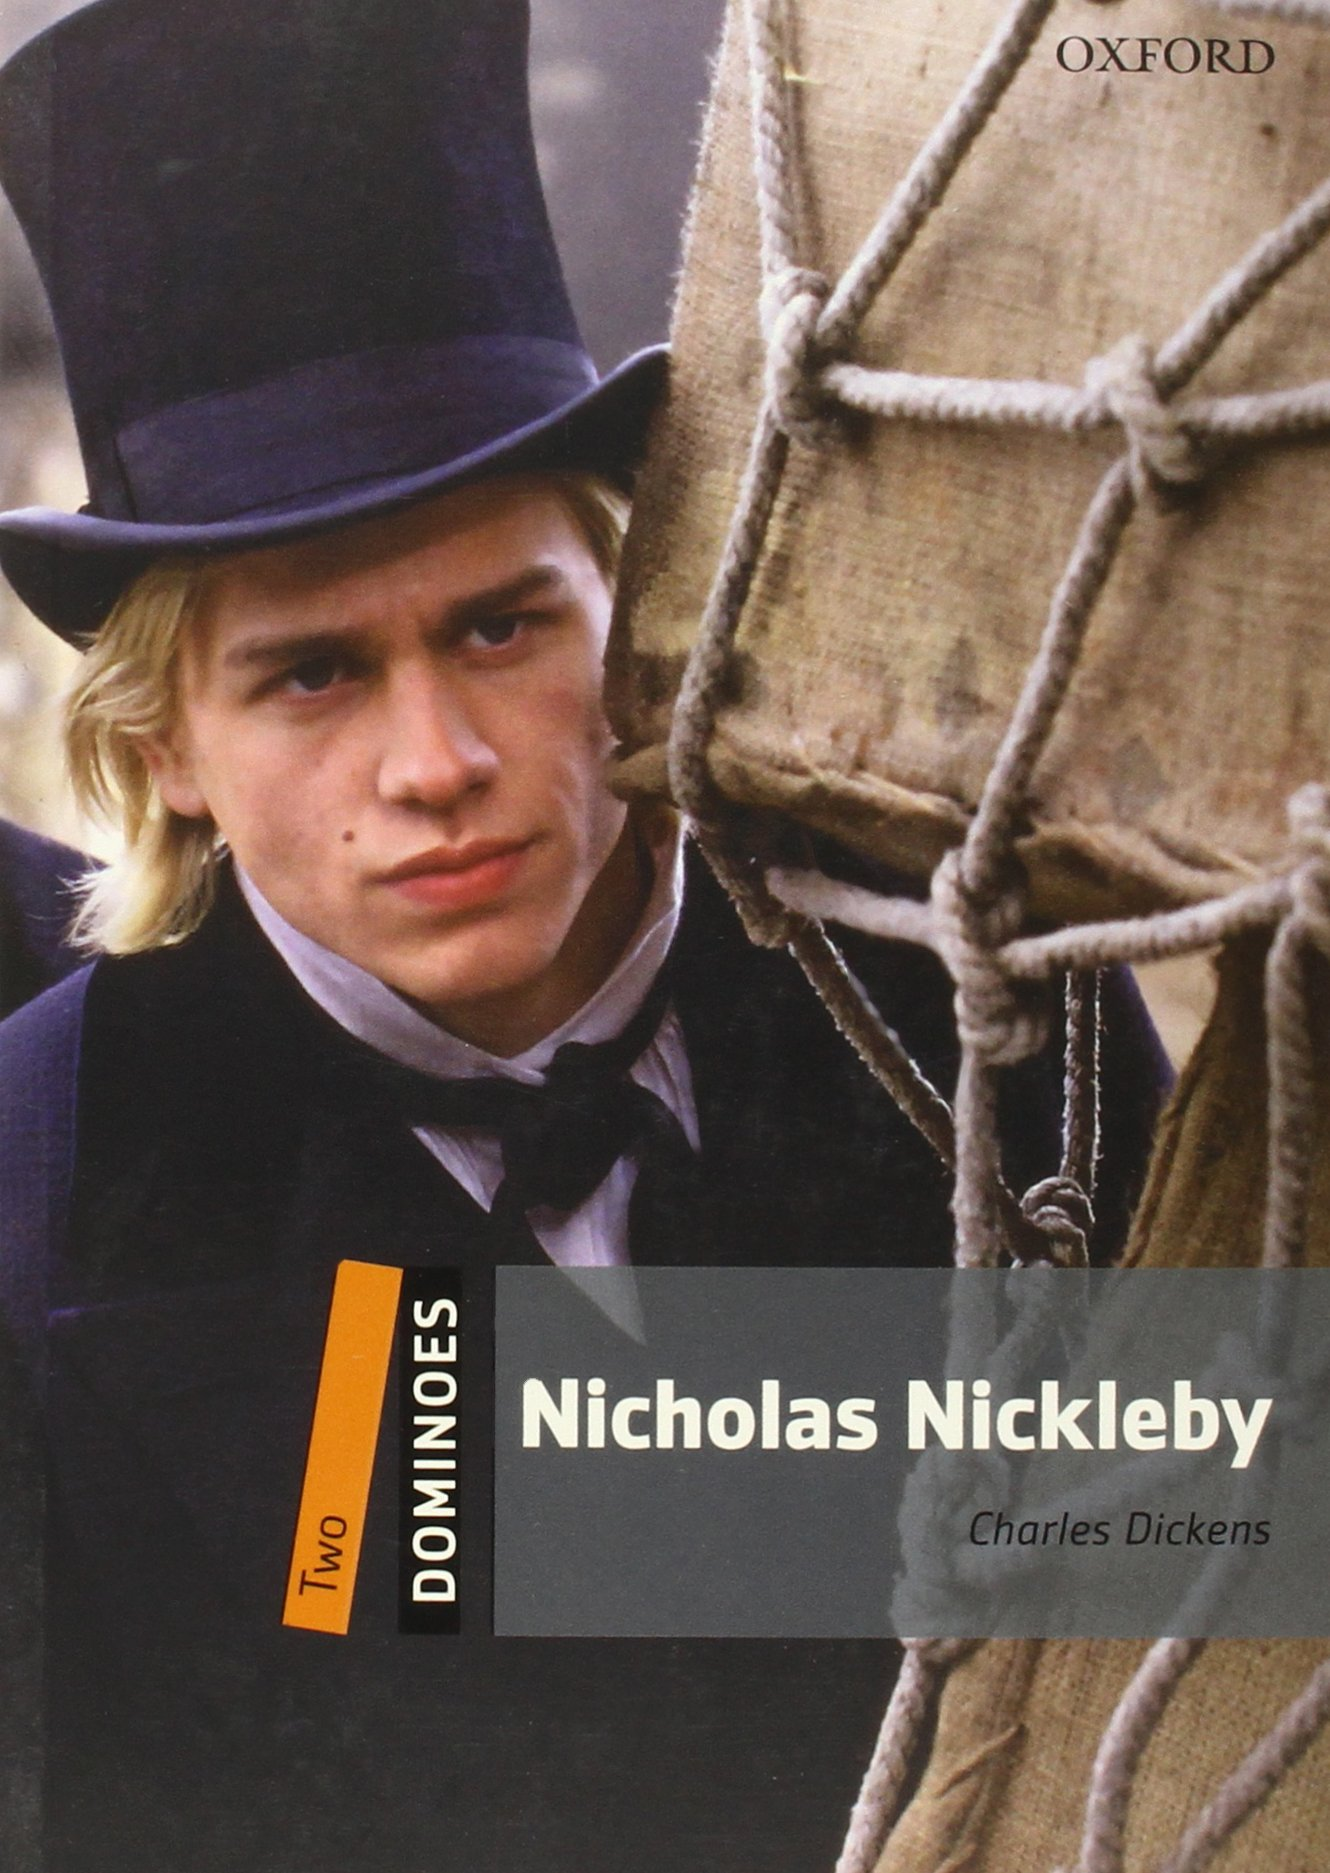 87caa9047f79 Buy Dominoes Two  Nicholas Nickleby Book Online at Low Prices in ...